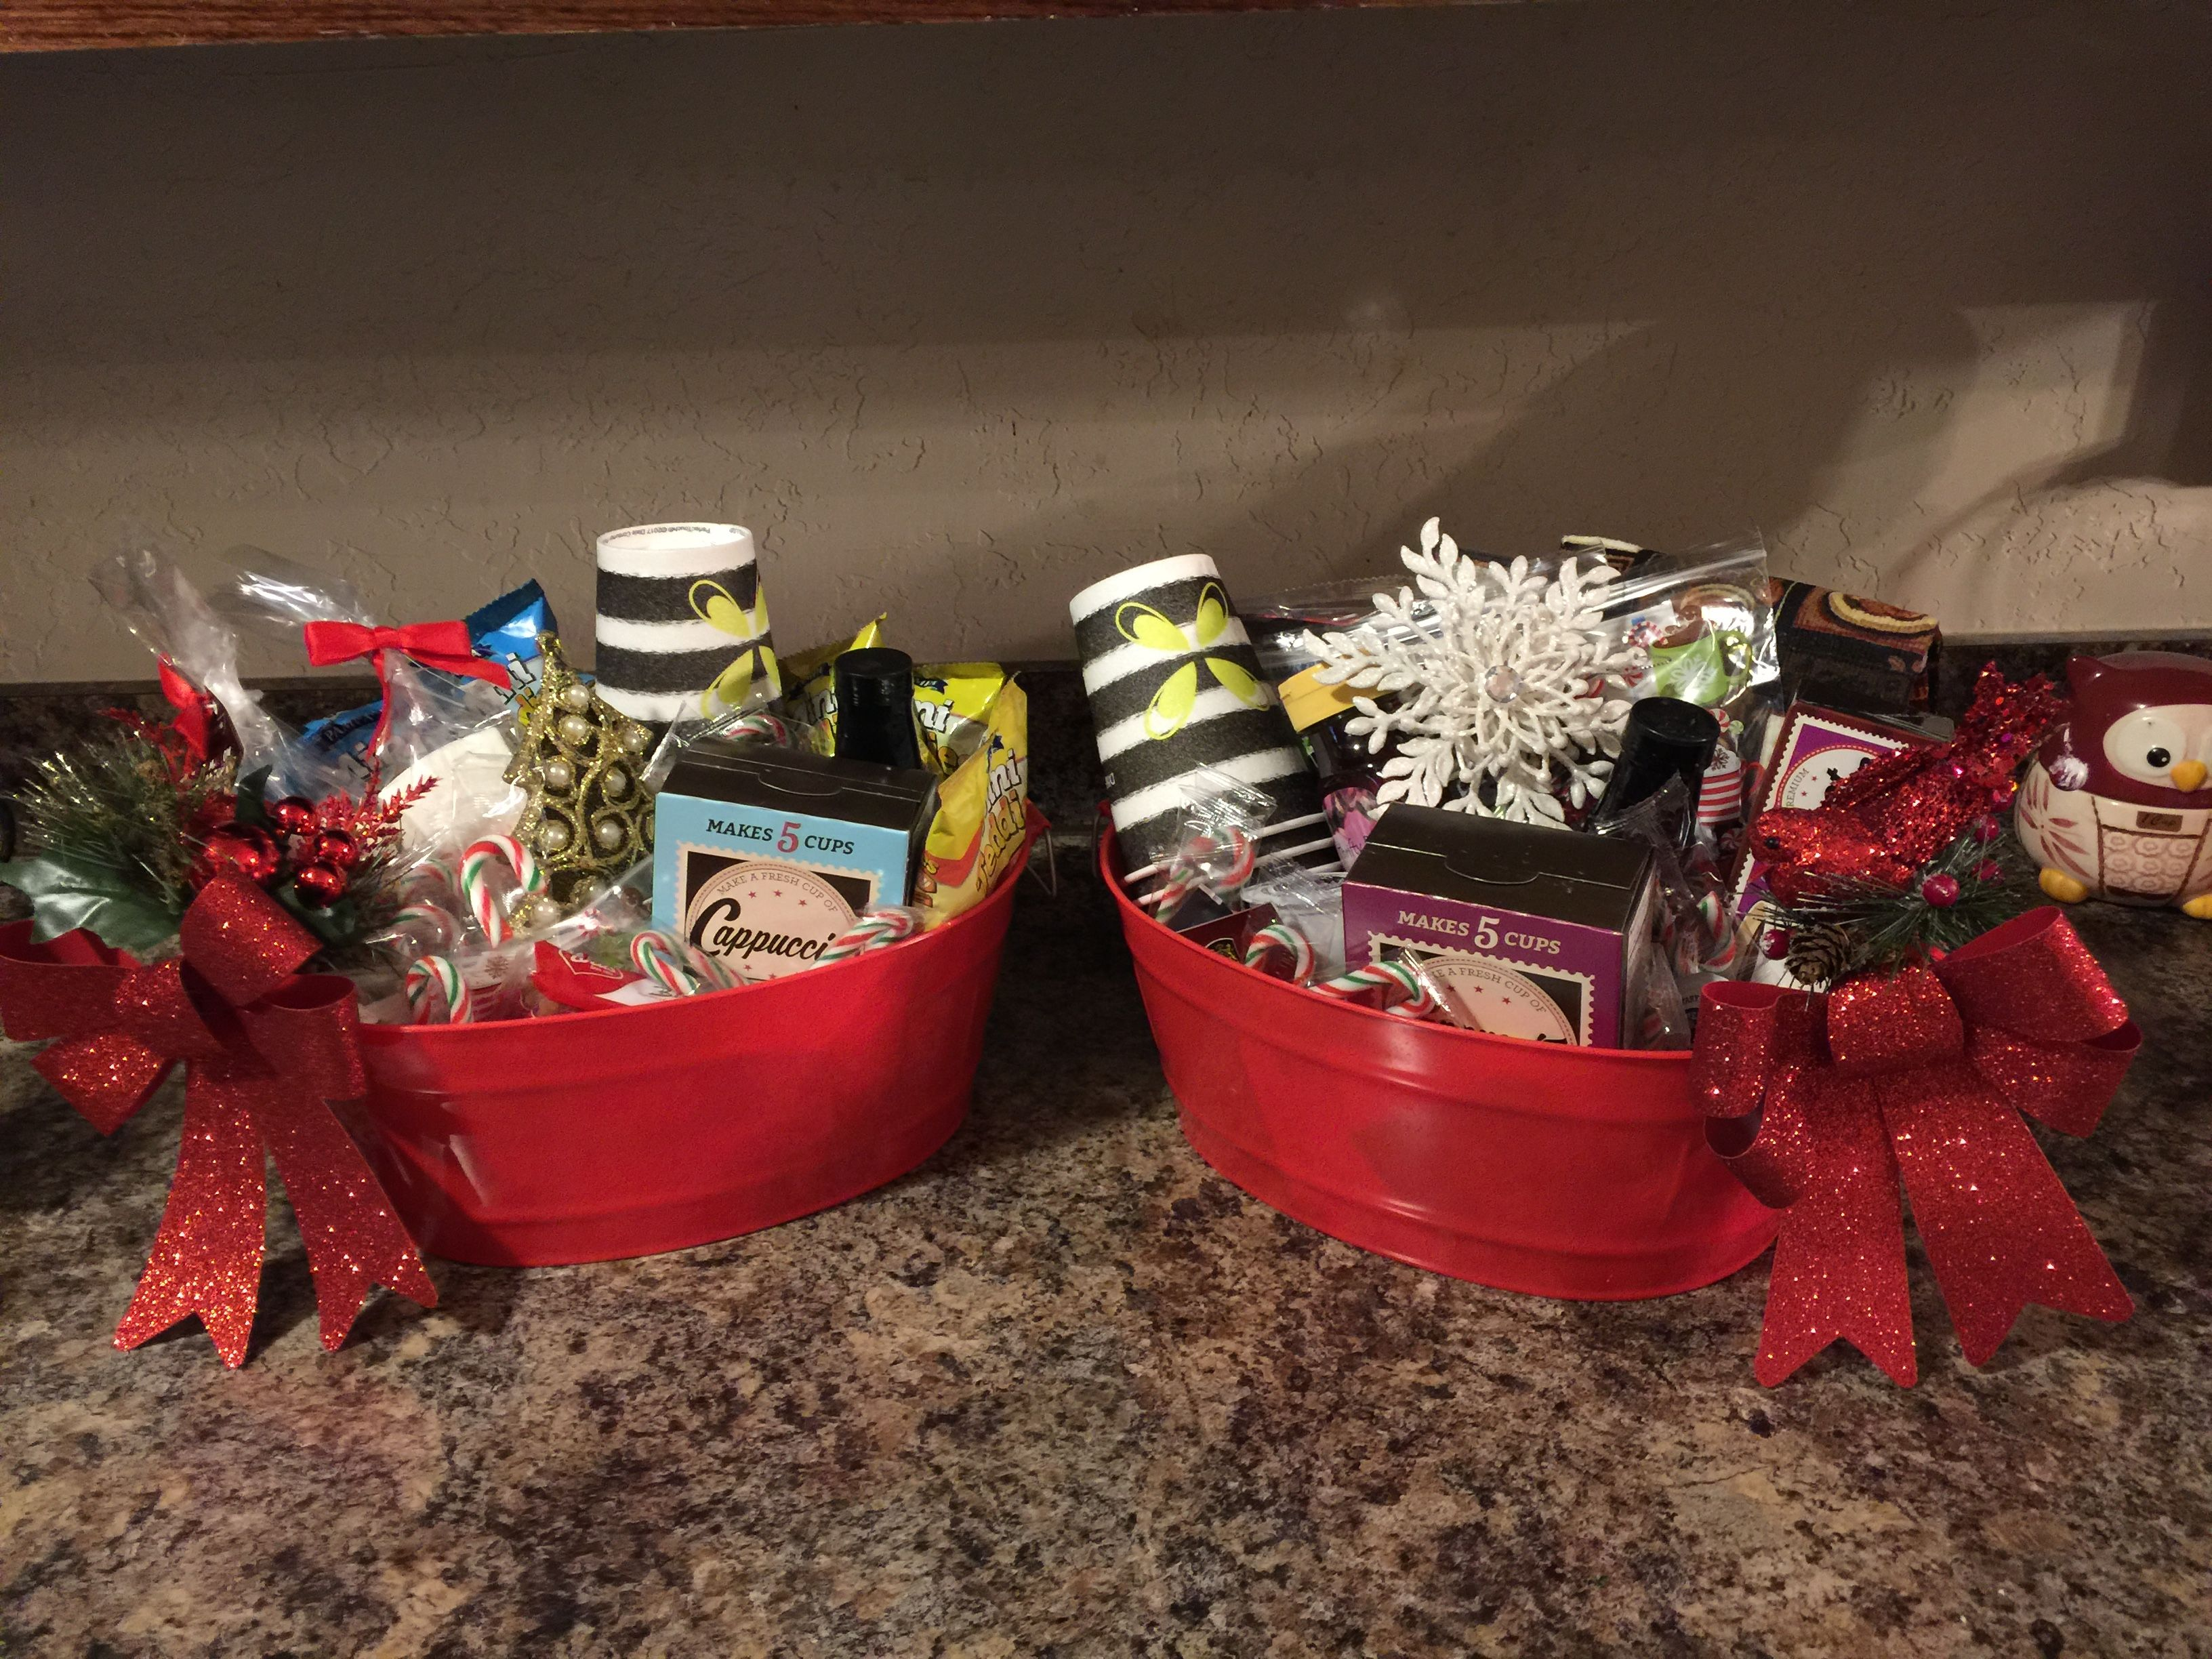 Coffee Gift Basket Idea Dollar Tree If You Need An Idea For A Gift Easy And Won T Break The Bu Coffee Gift Basket Coffee Gift Baskets Dollar Tree Christmas